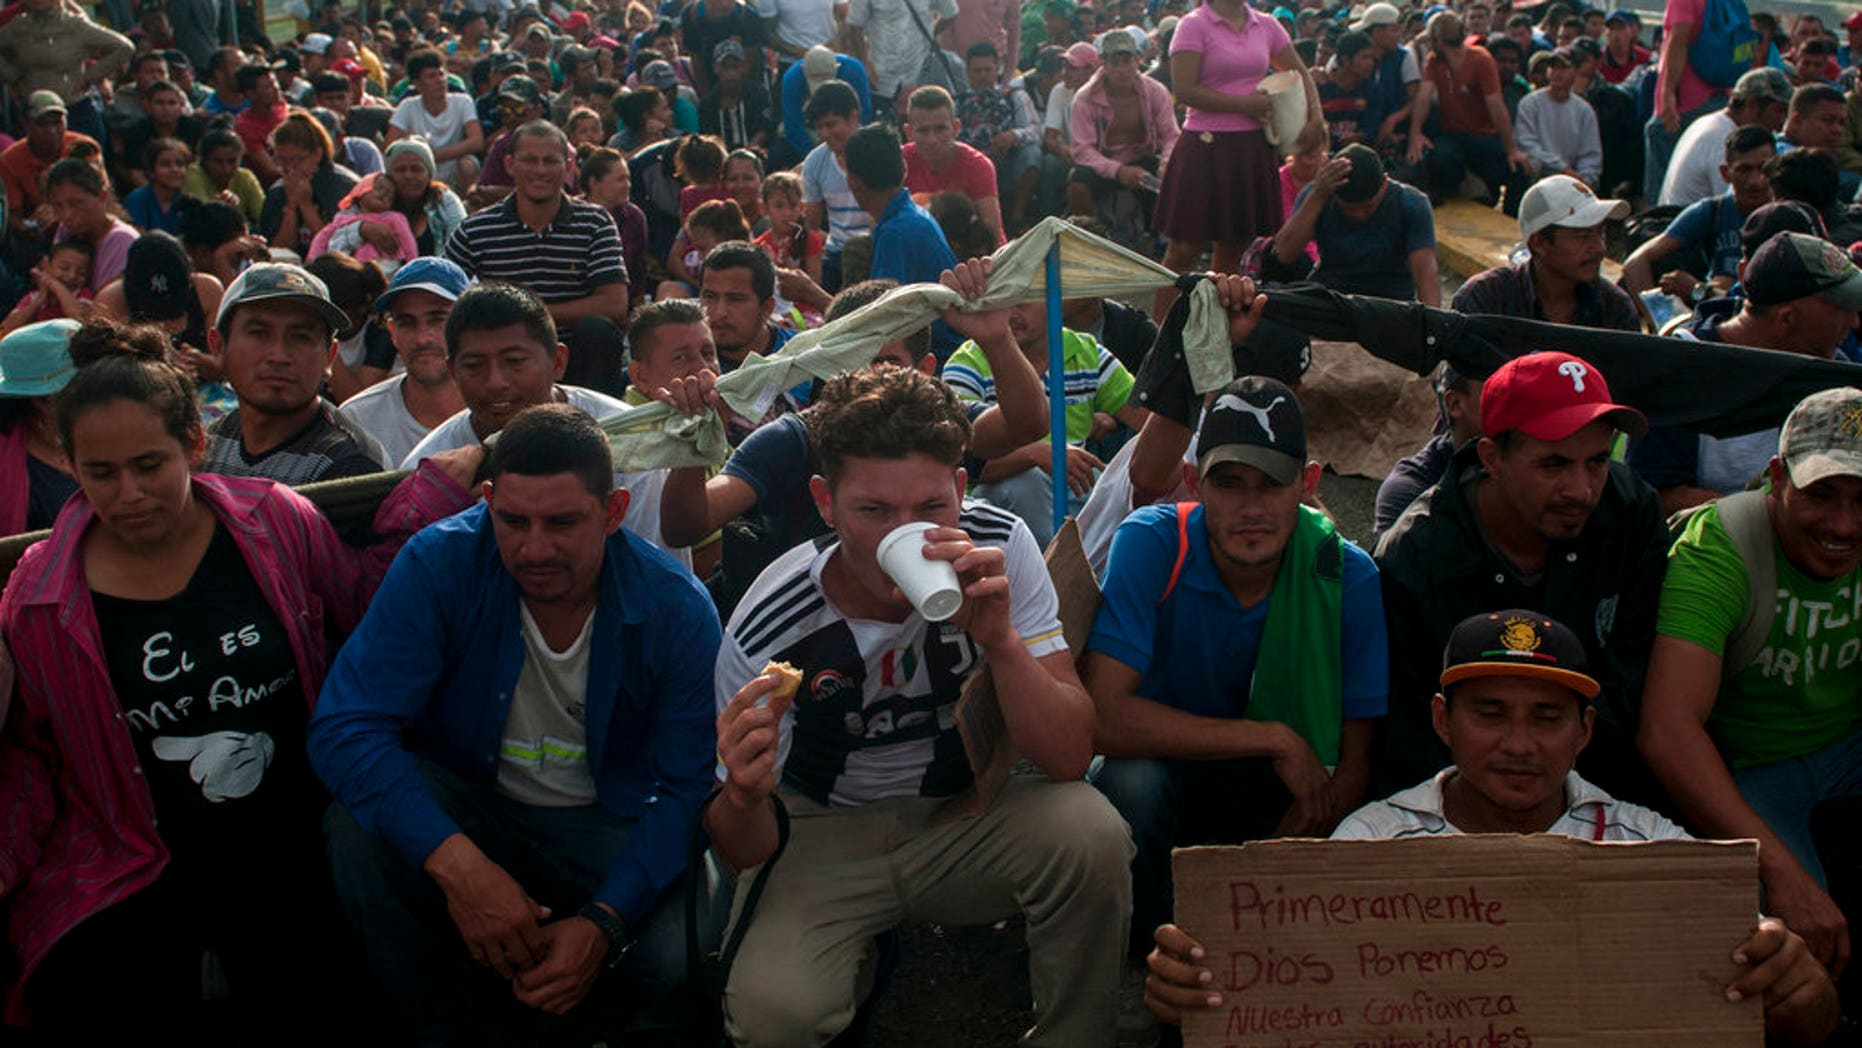 Honduras migrants wait to be attended by Mexican migration authorities on a bridge that stretches over the Suchiate River, connecting Guatemala and Mexico, in Tecun Uman, Guatemala. (AP Photo/Oliver de Ros)